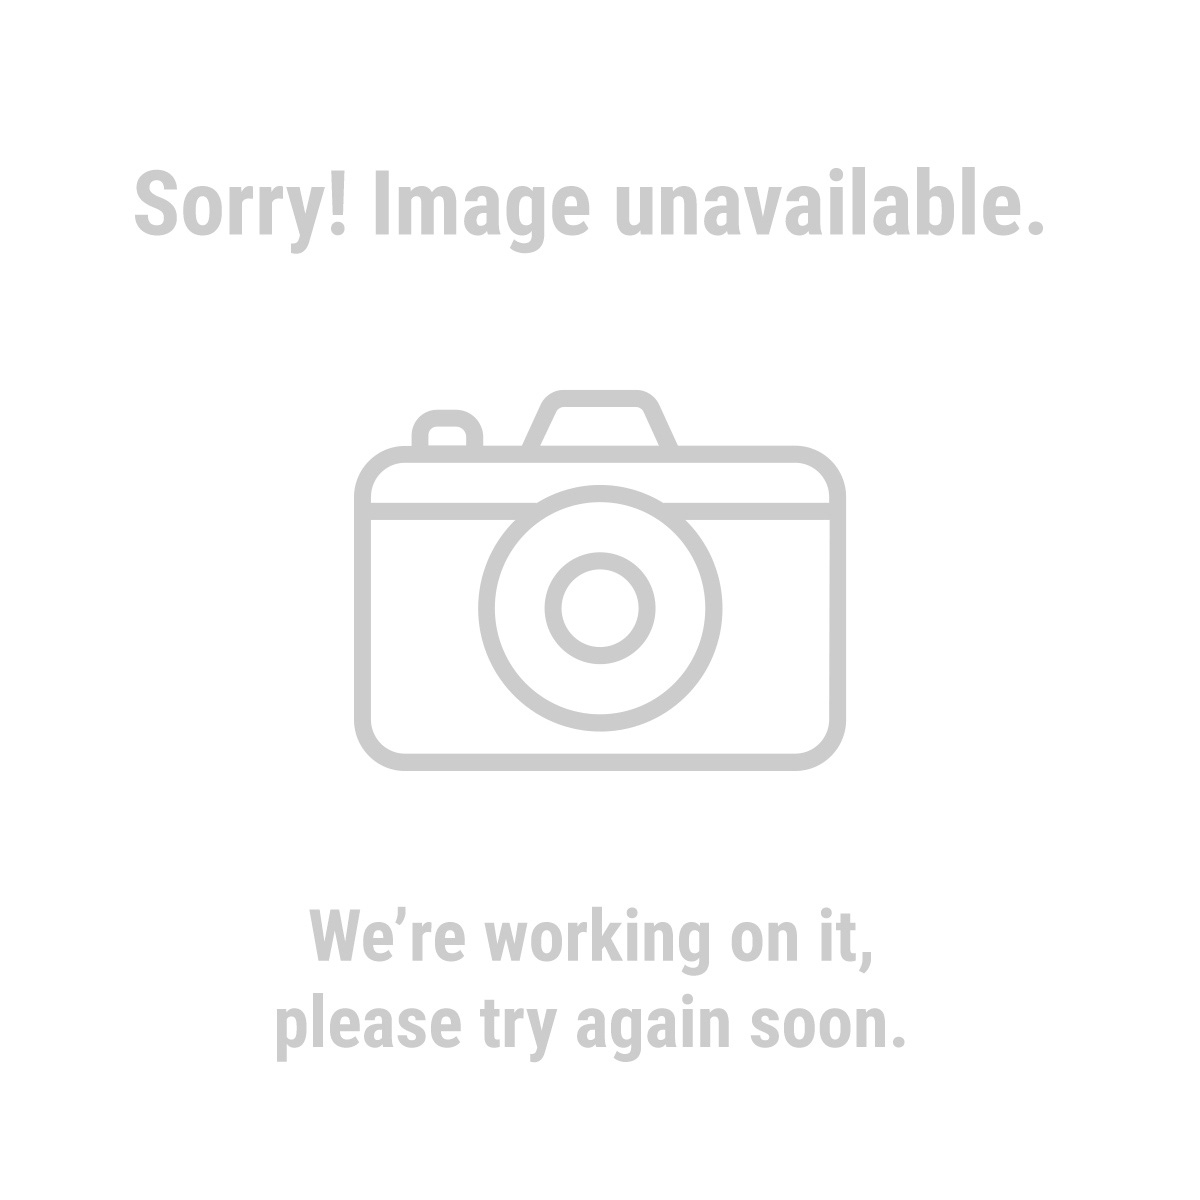 "Haul-Master® 97214 3-Point Quick Hitch - 27-3/16"" Clearance"